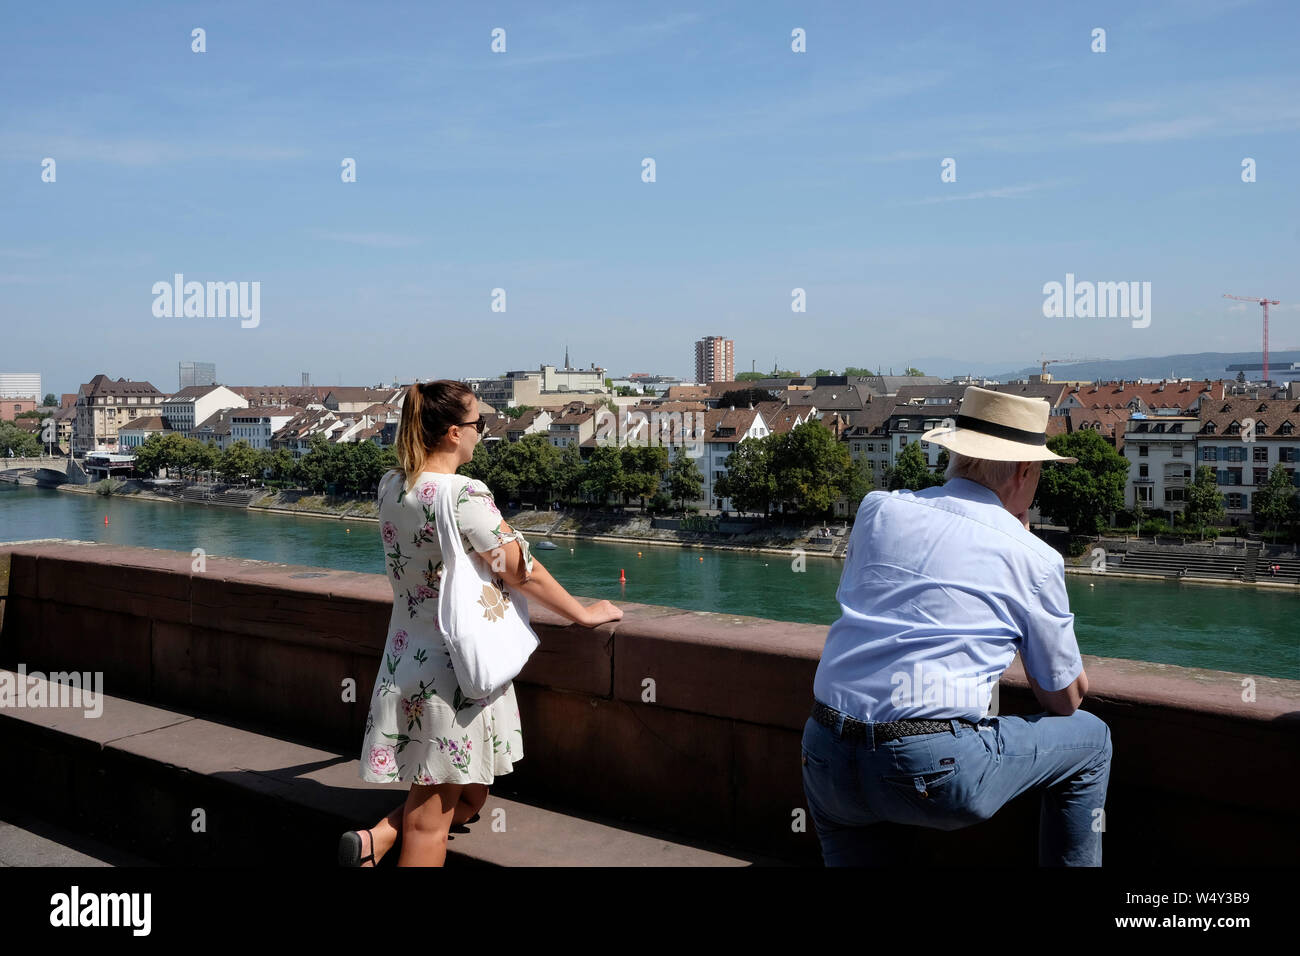 People enjoying the view of Basel from the Pfalz, a viewing terrace, Switzerland Stock Photo